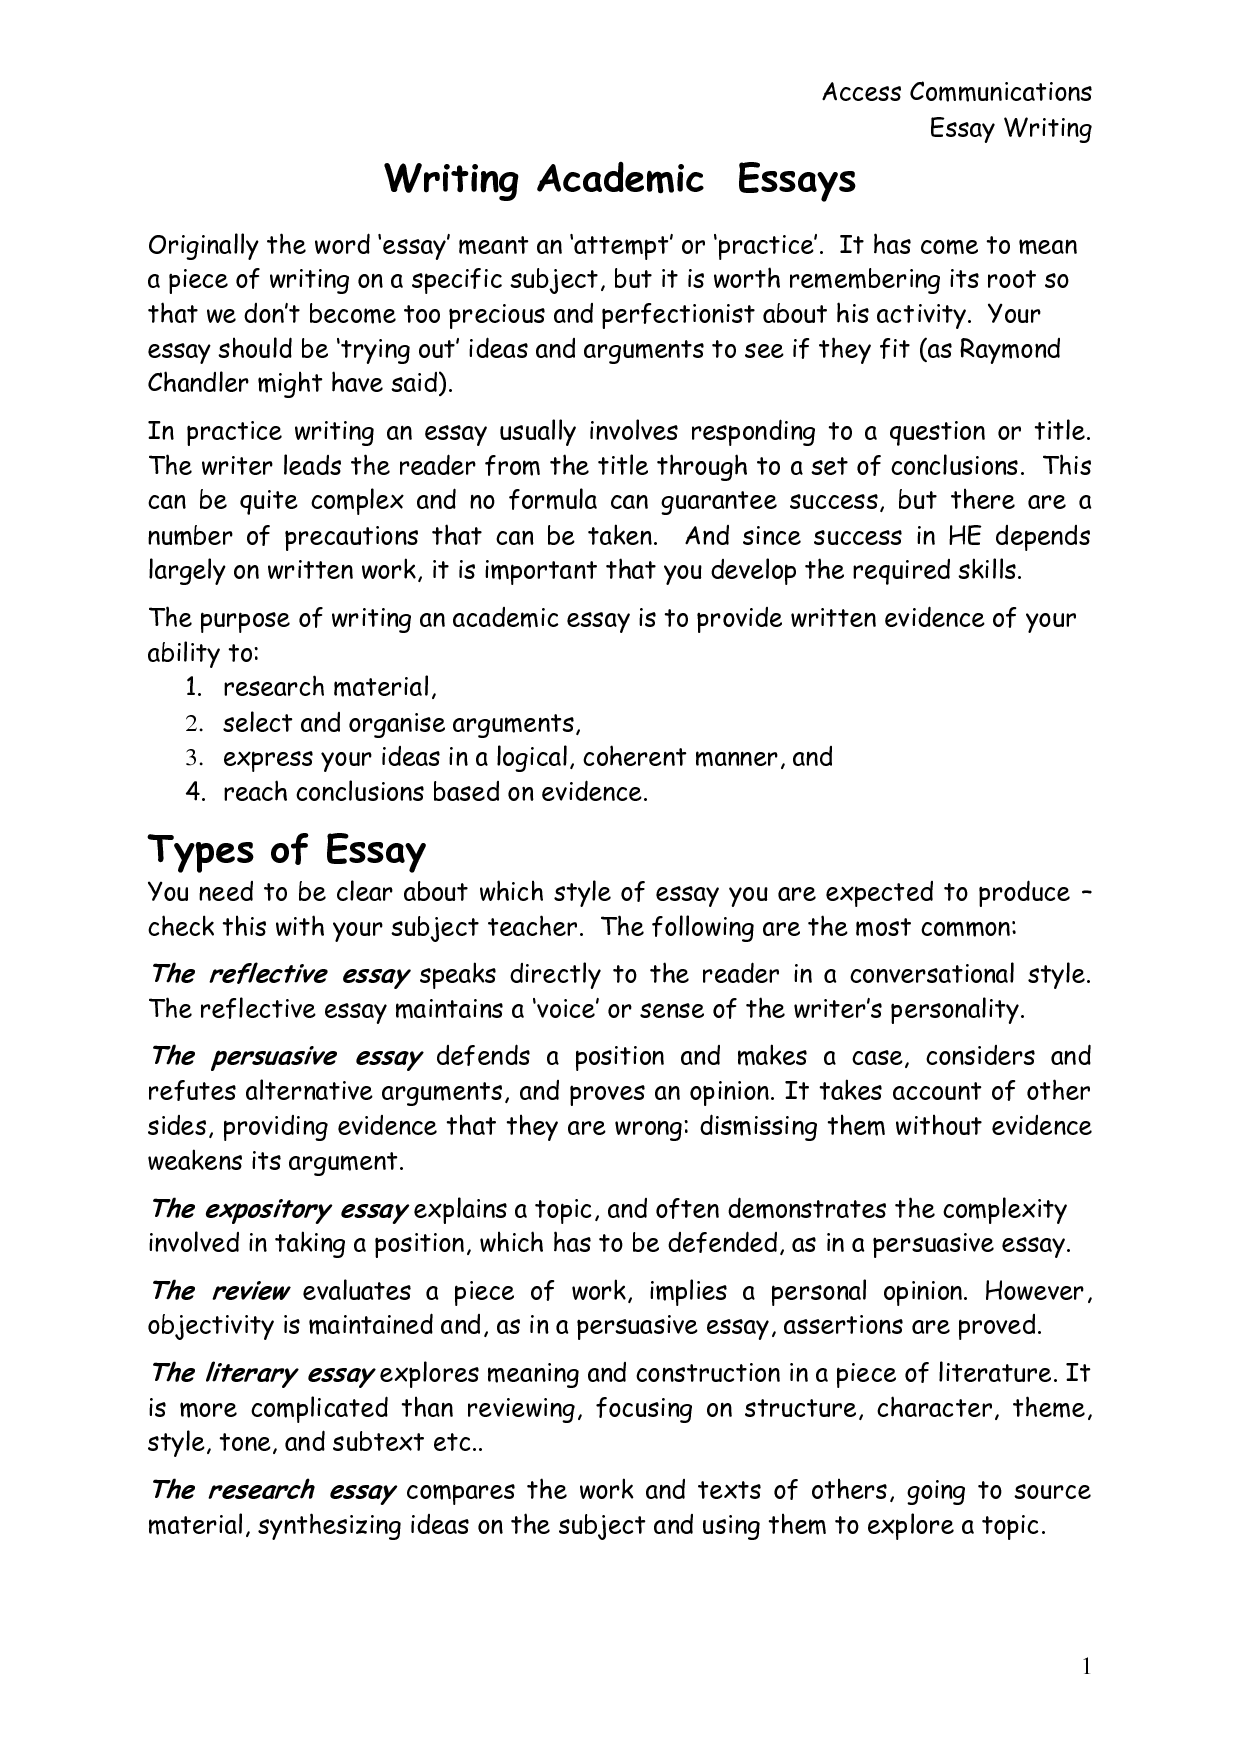 016 Reflective Essay On Academic Writings Beautiful Examples About Life Pdf Apa Full